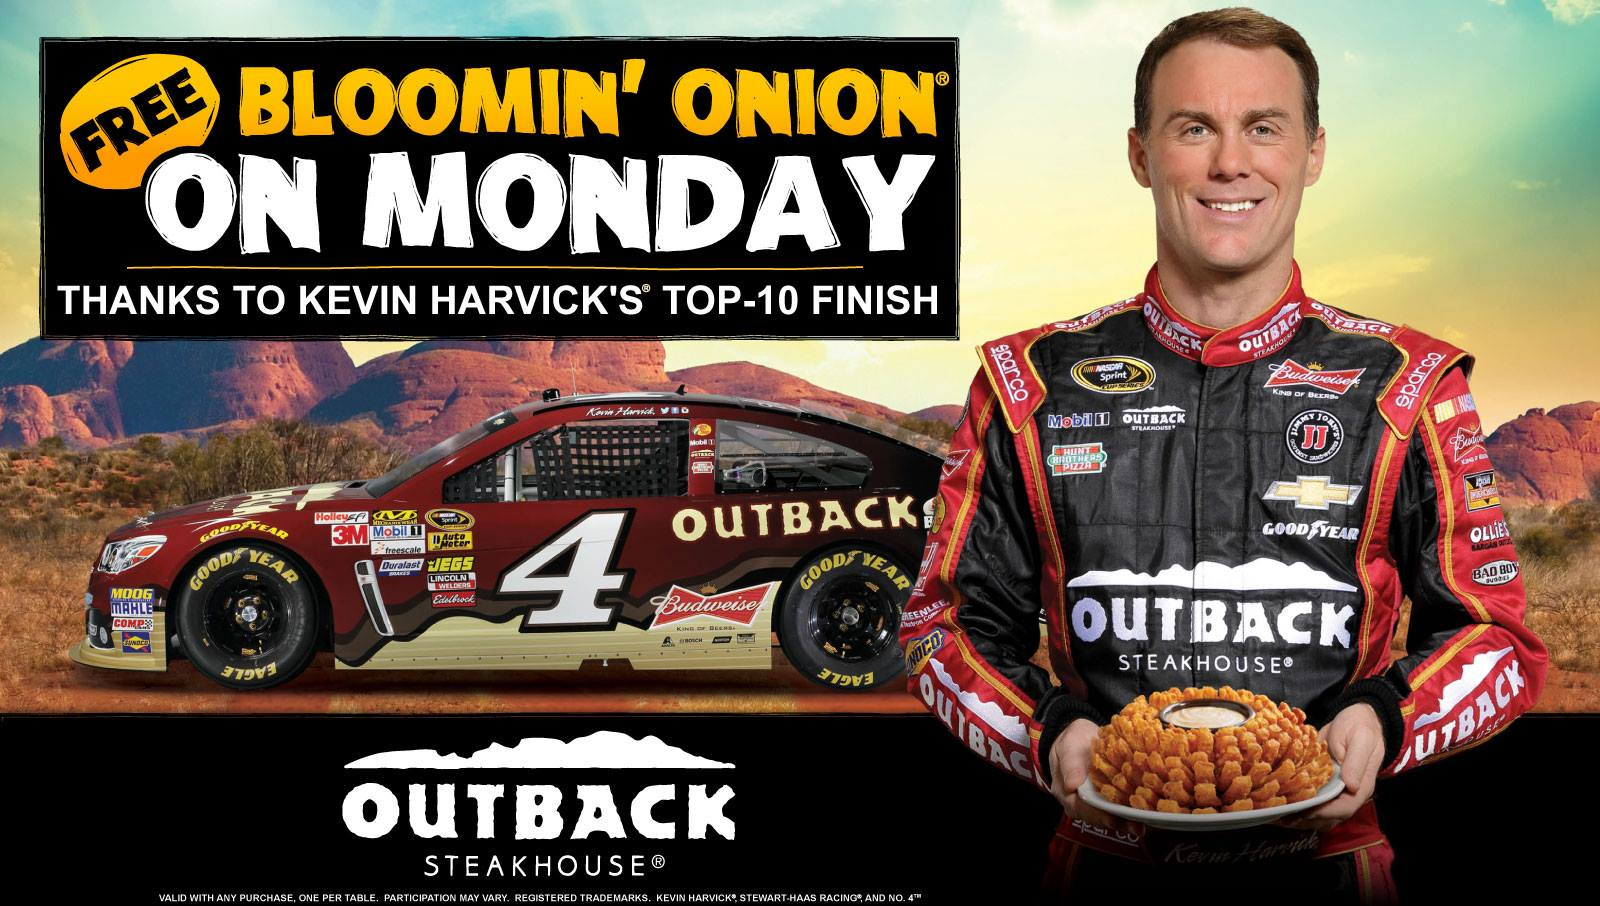 outback-steakhouse-kevin-harvick